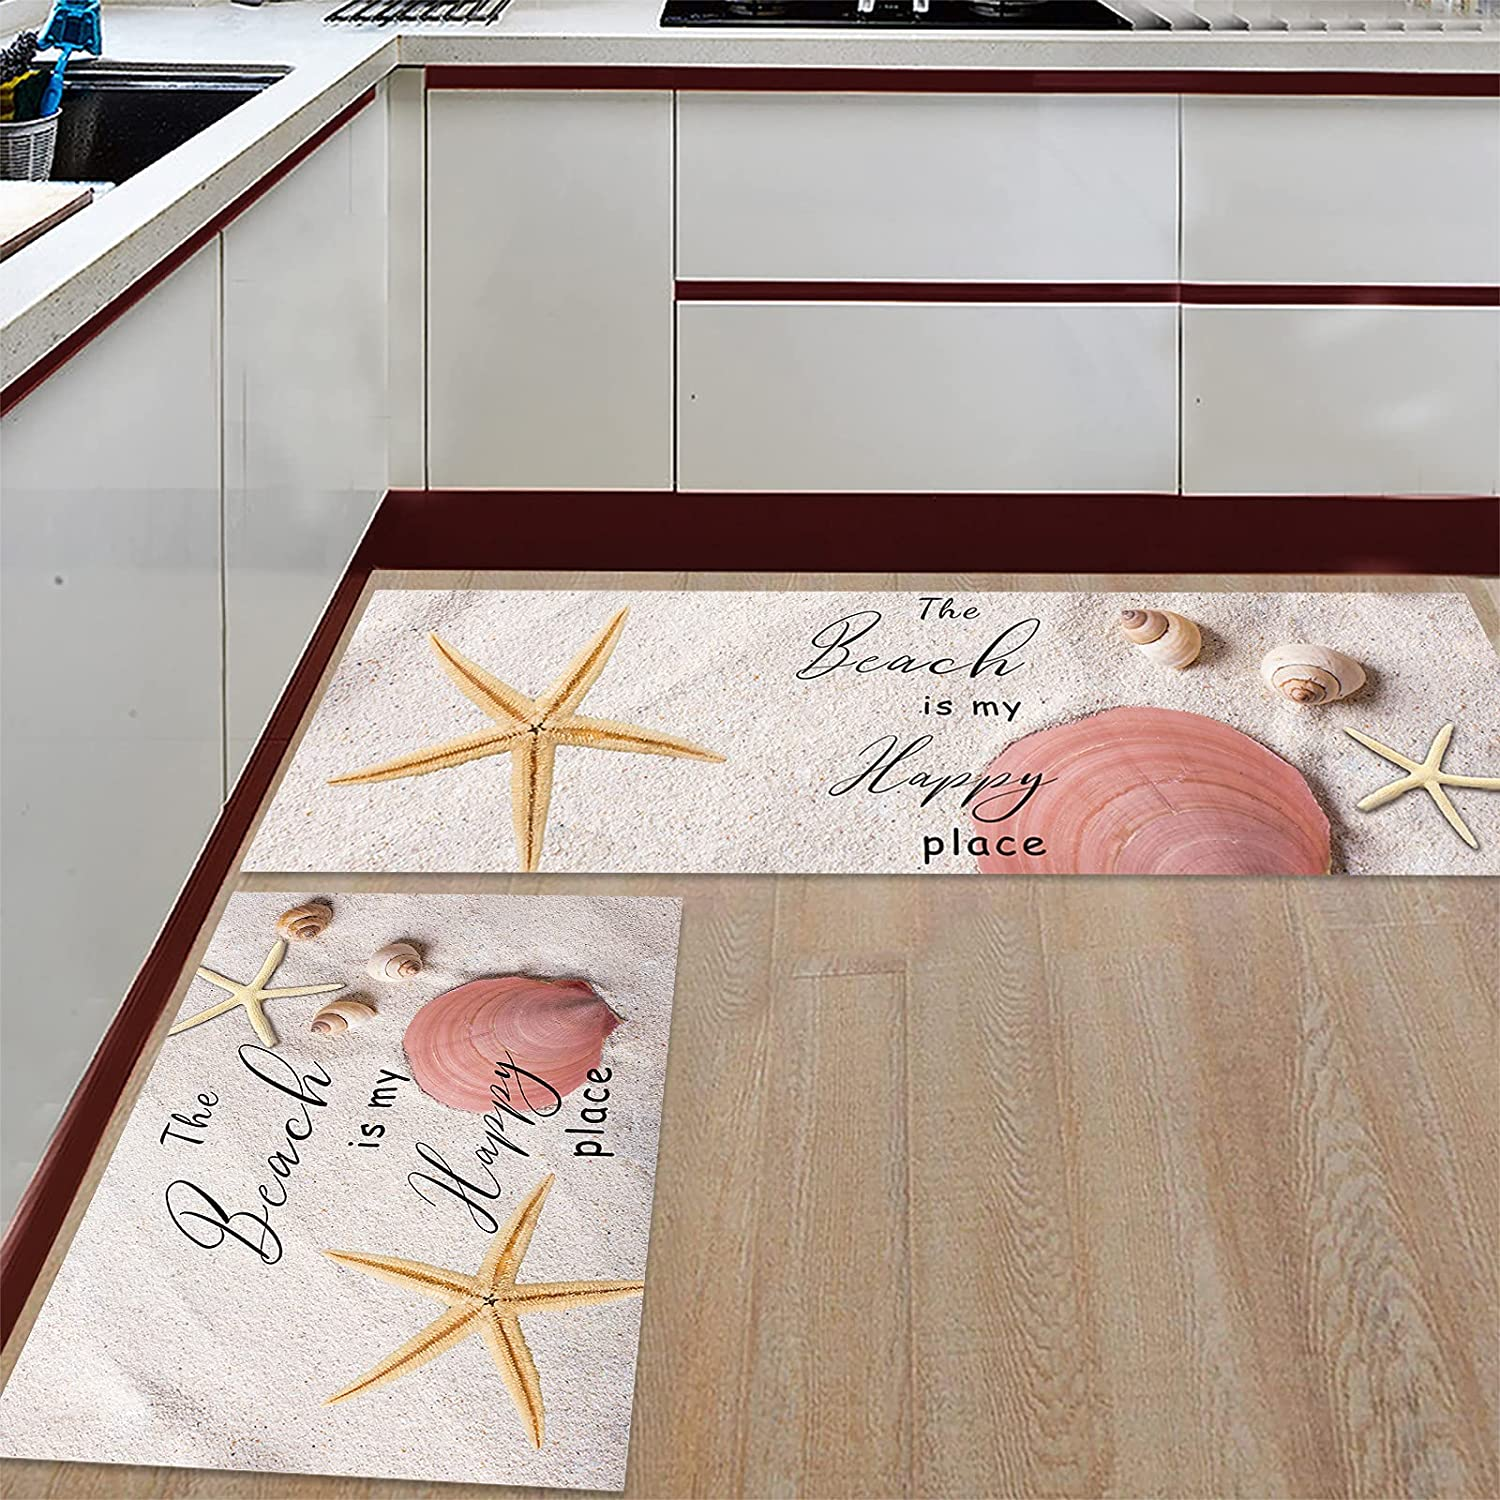 Anmevor Kitchen Rug Sets 2 Piece Mats Non-Slip 70% OFF Outlet Rugs Sale special price Door Be The